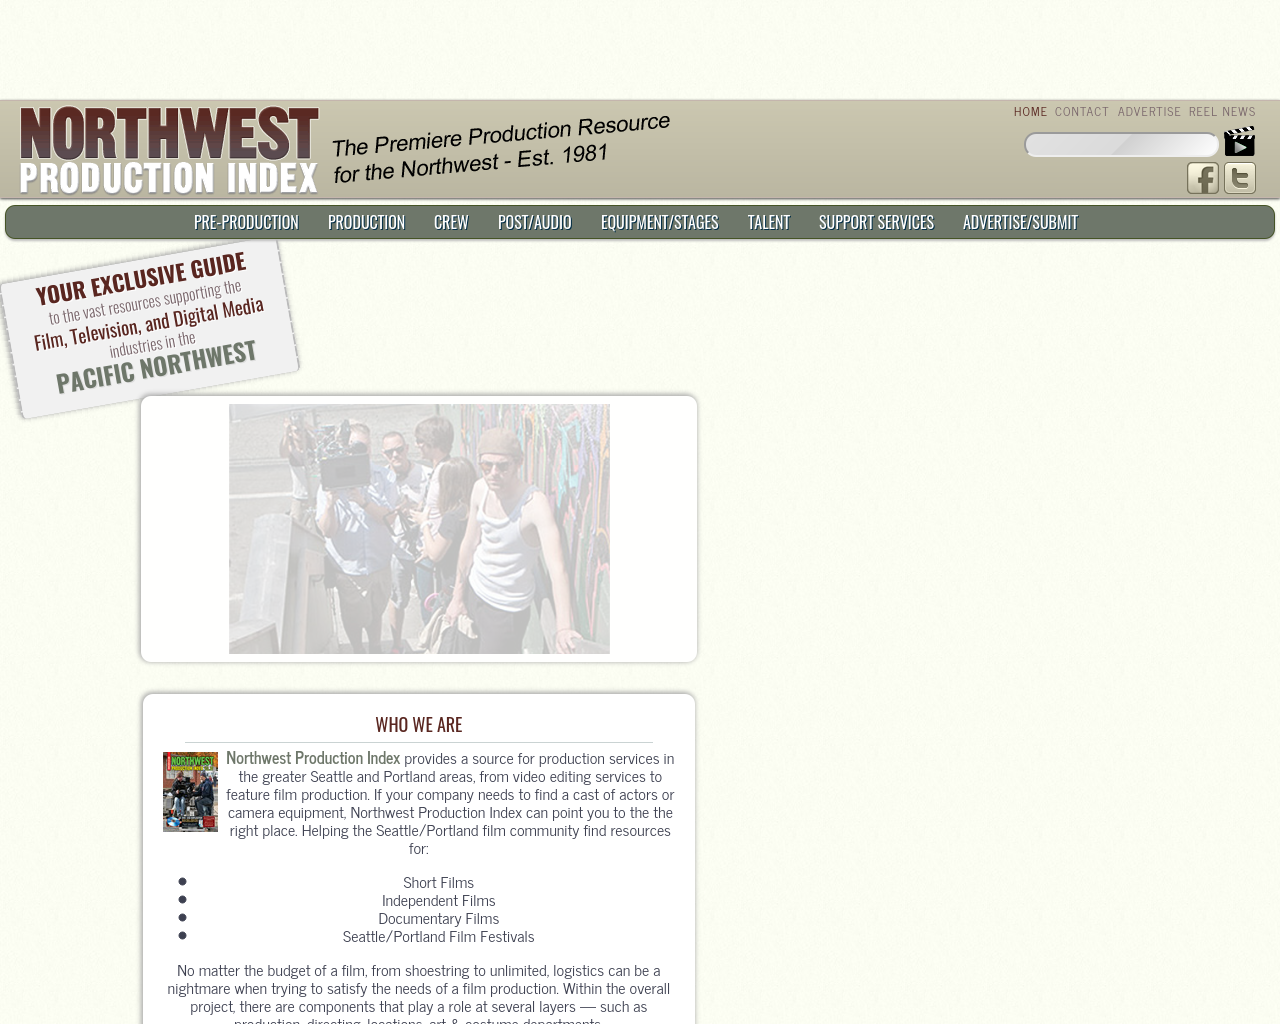 NORTHWEST-PRODUCTION-INDEX-Advertising-Reviews-Pricing